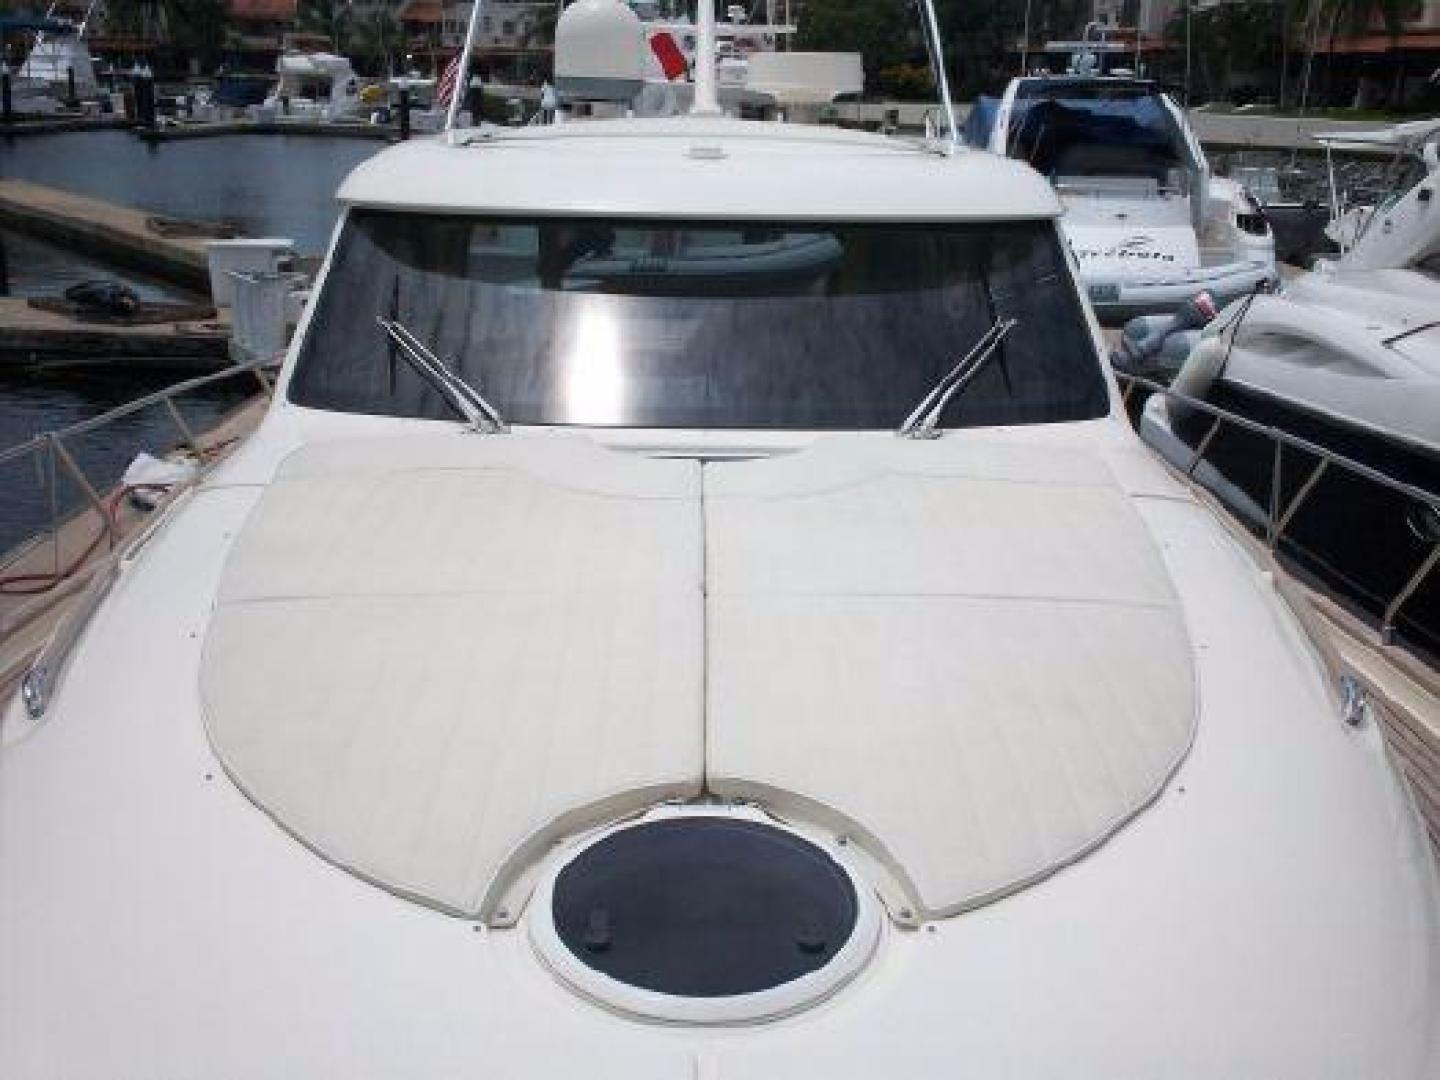 44' Mochi Craft, Listing Number 100804715, - Photo No. 6